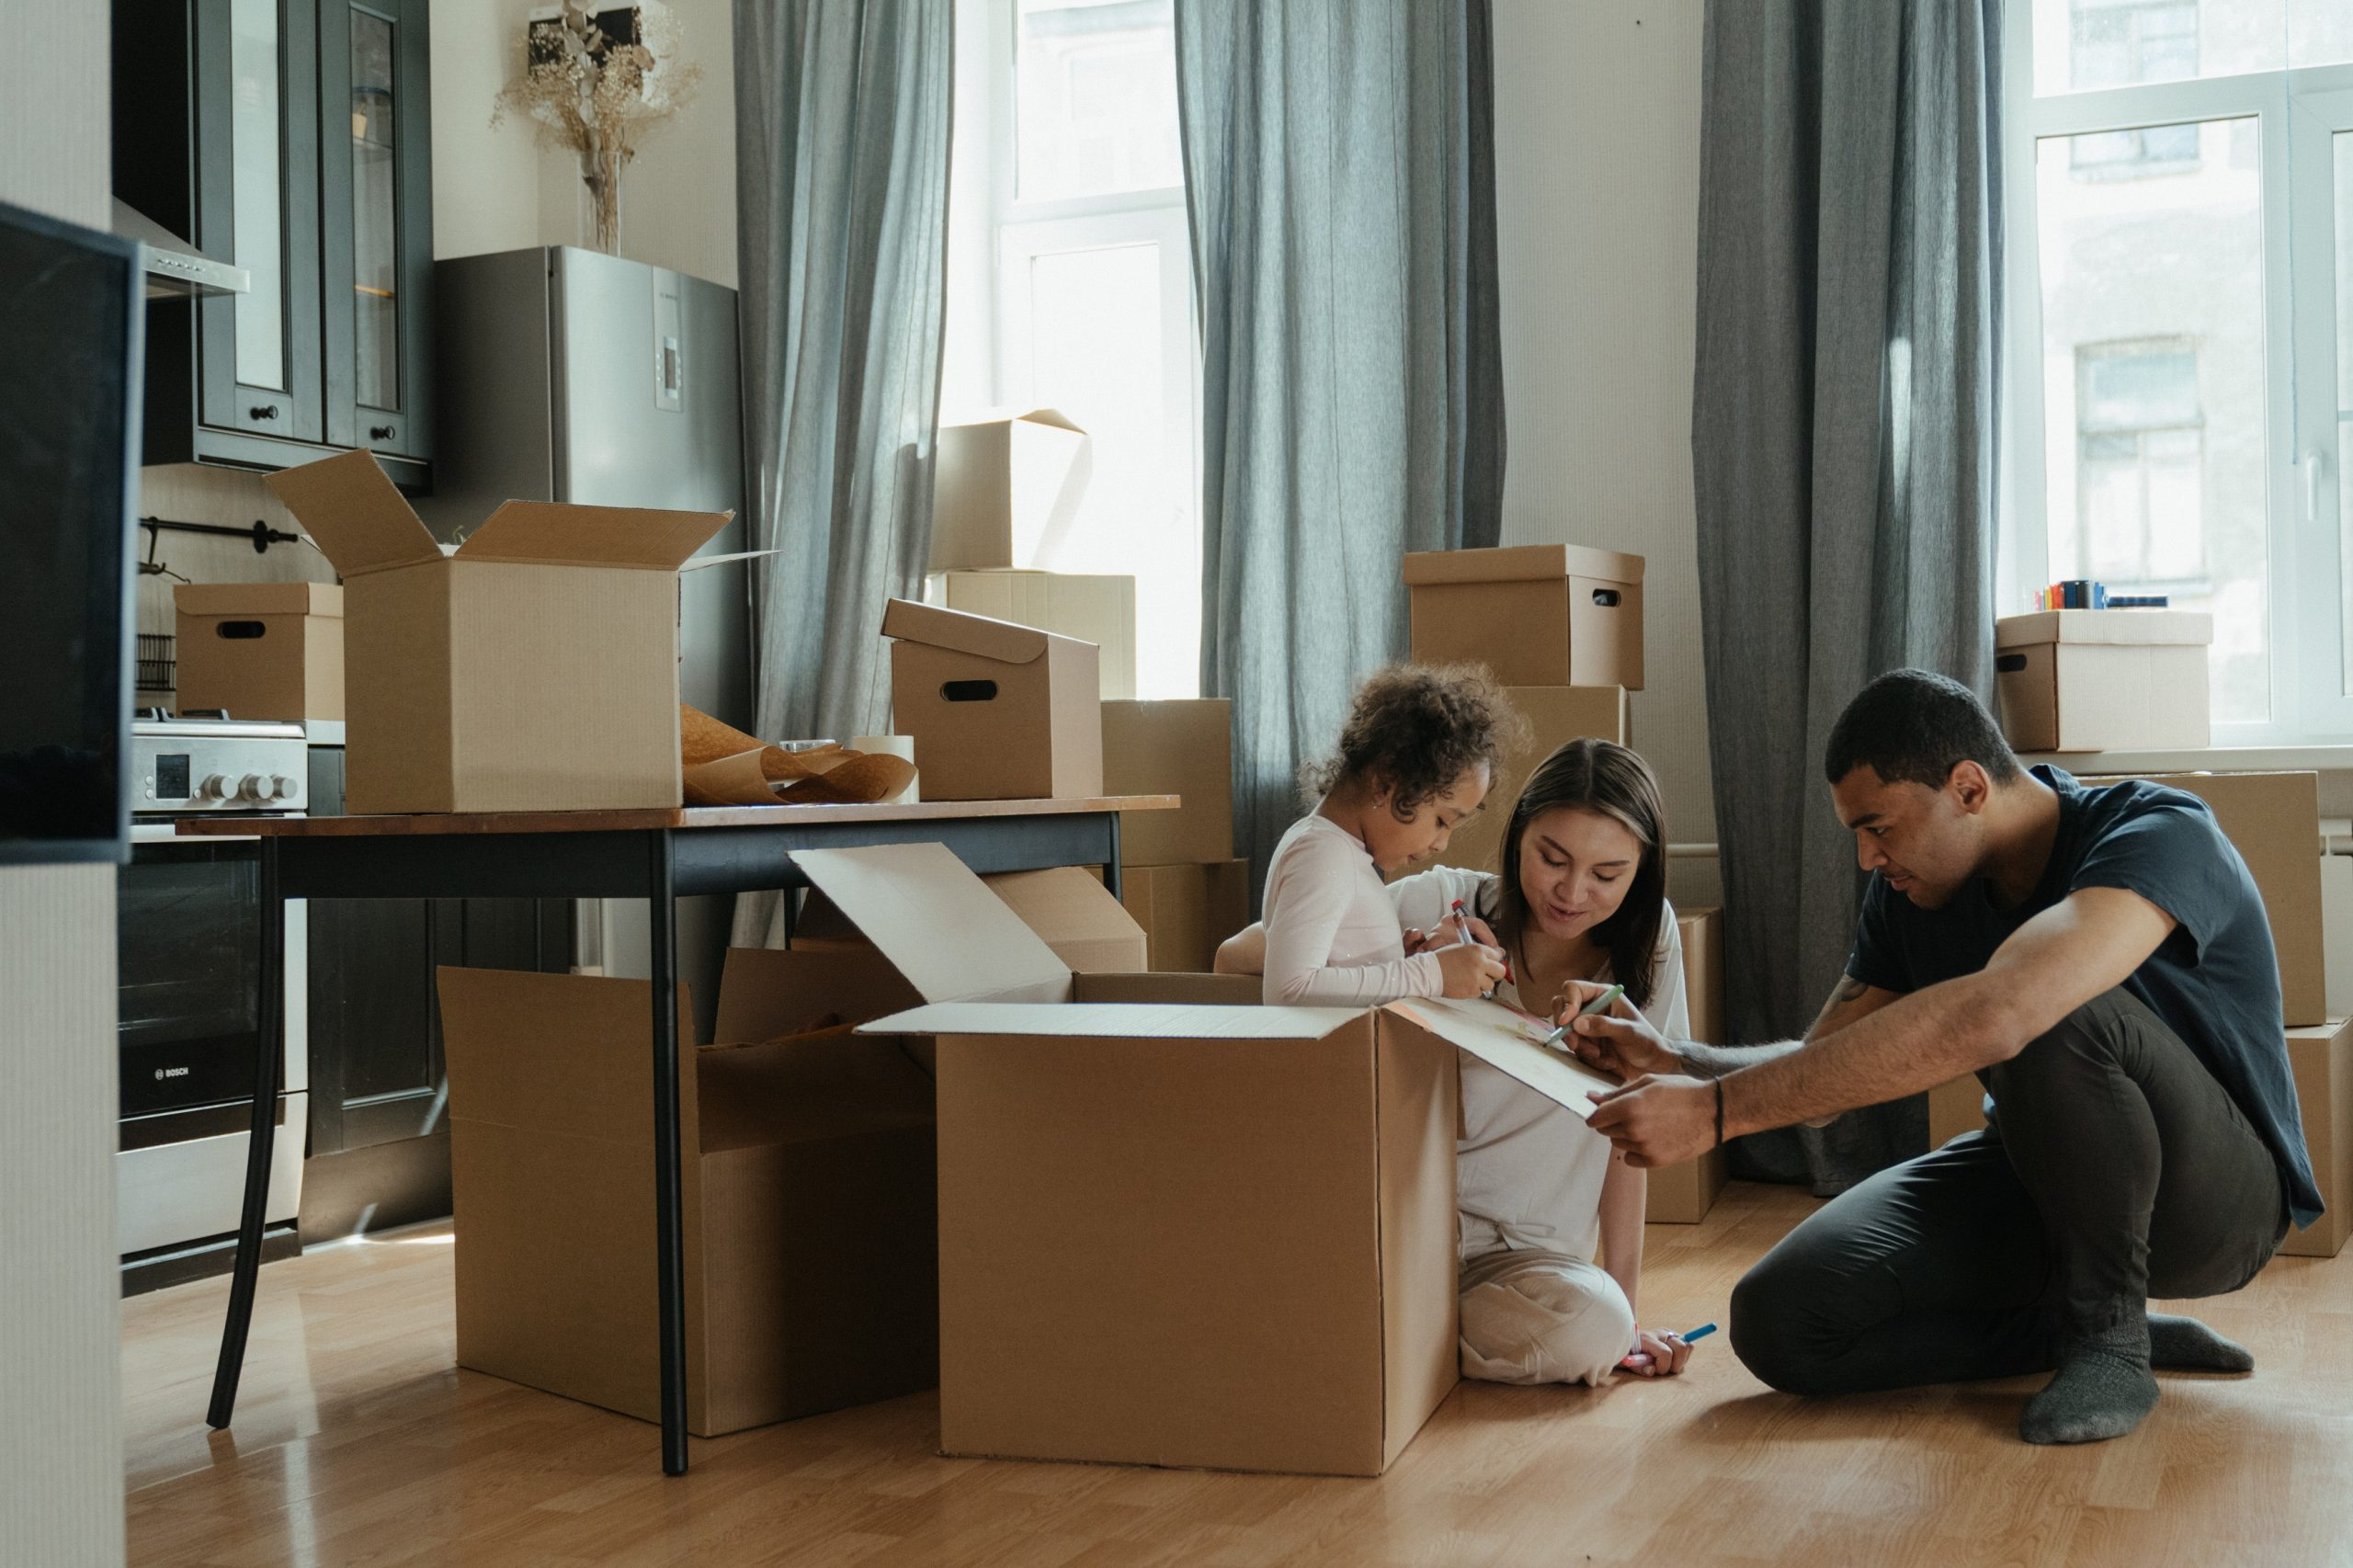 Moving into a new house cleaning tips: 6 Tips for Tidying Your Space